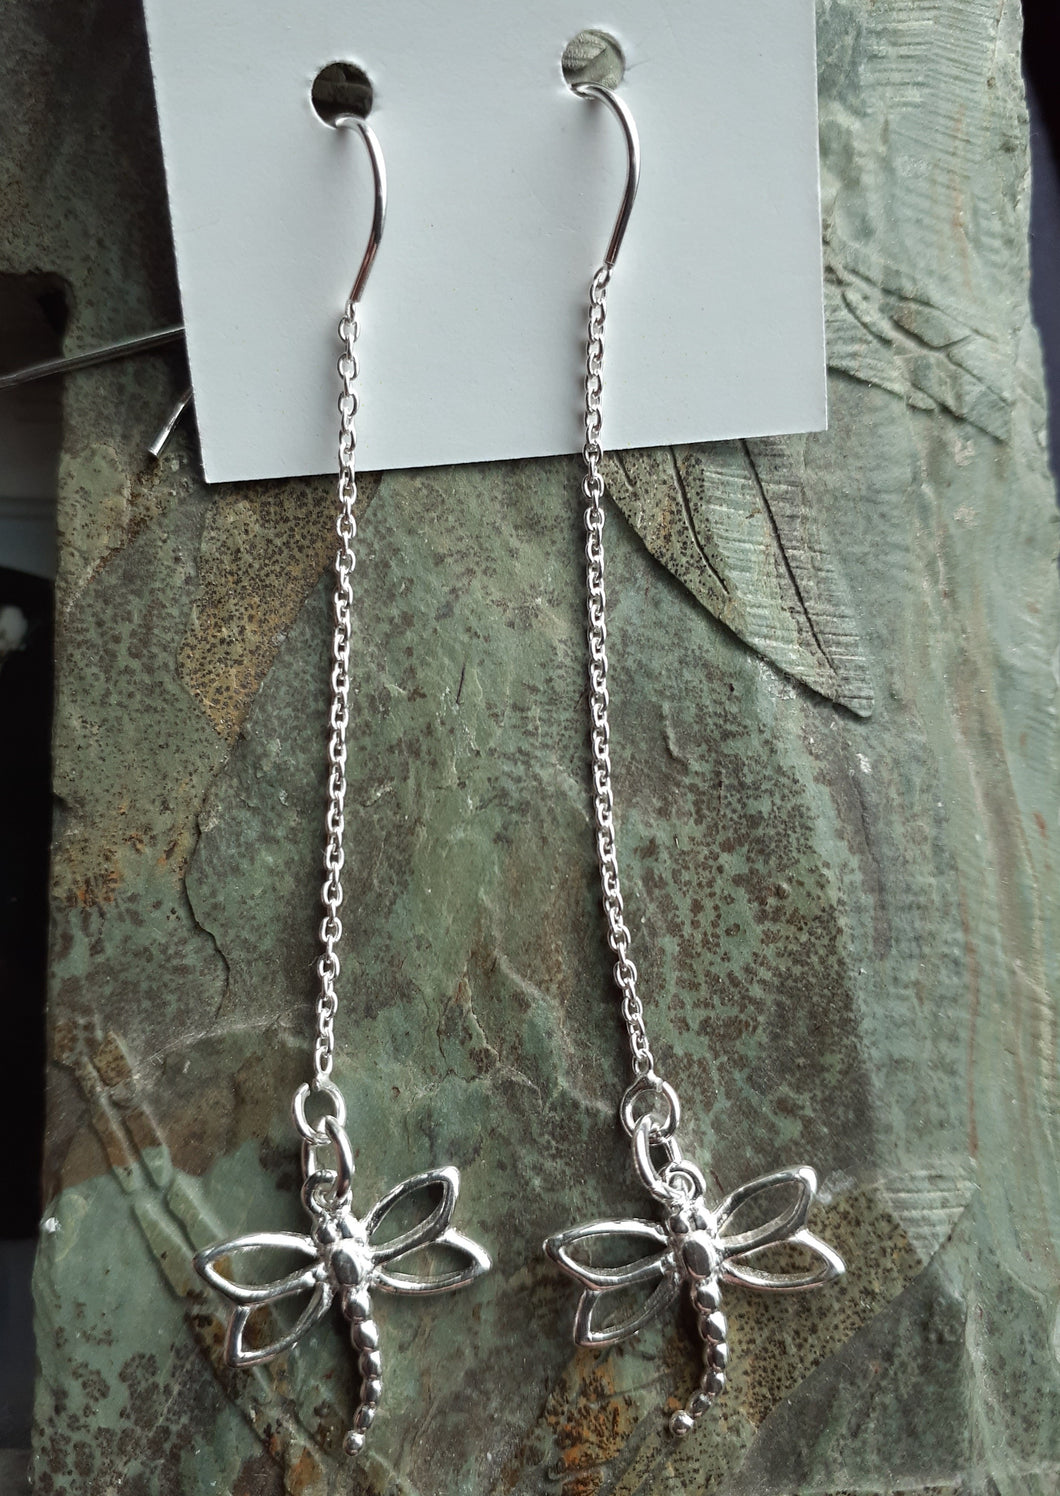 sterling silver ear threads with dragonflies. nice and pretty jewelry